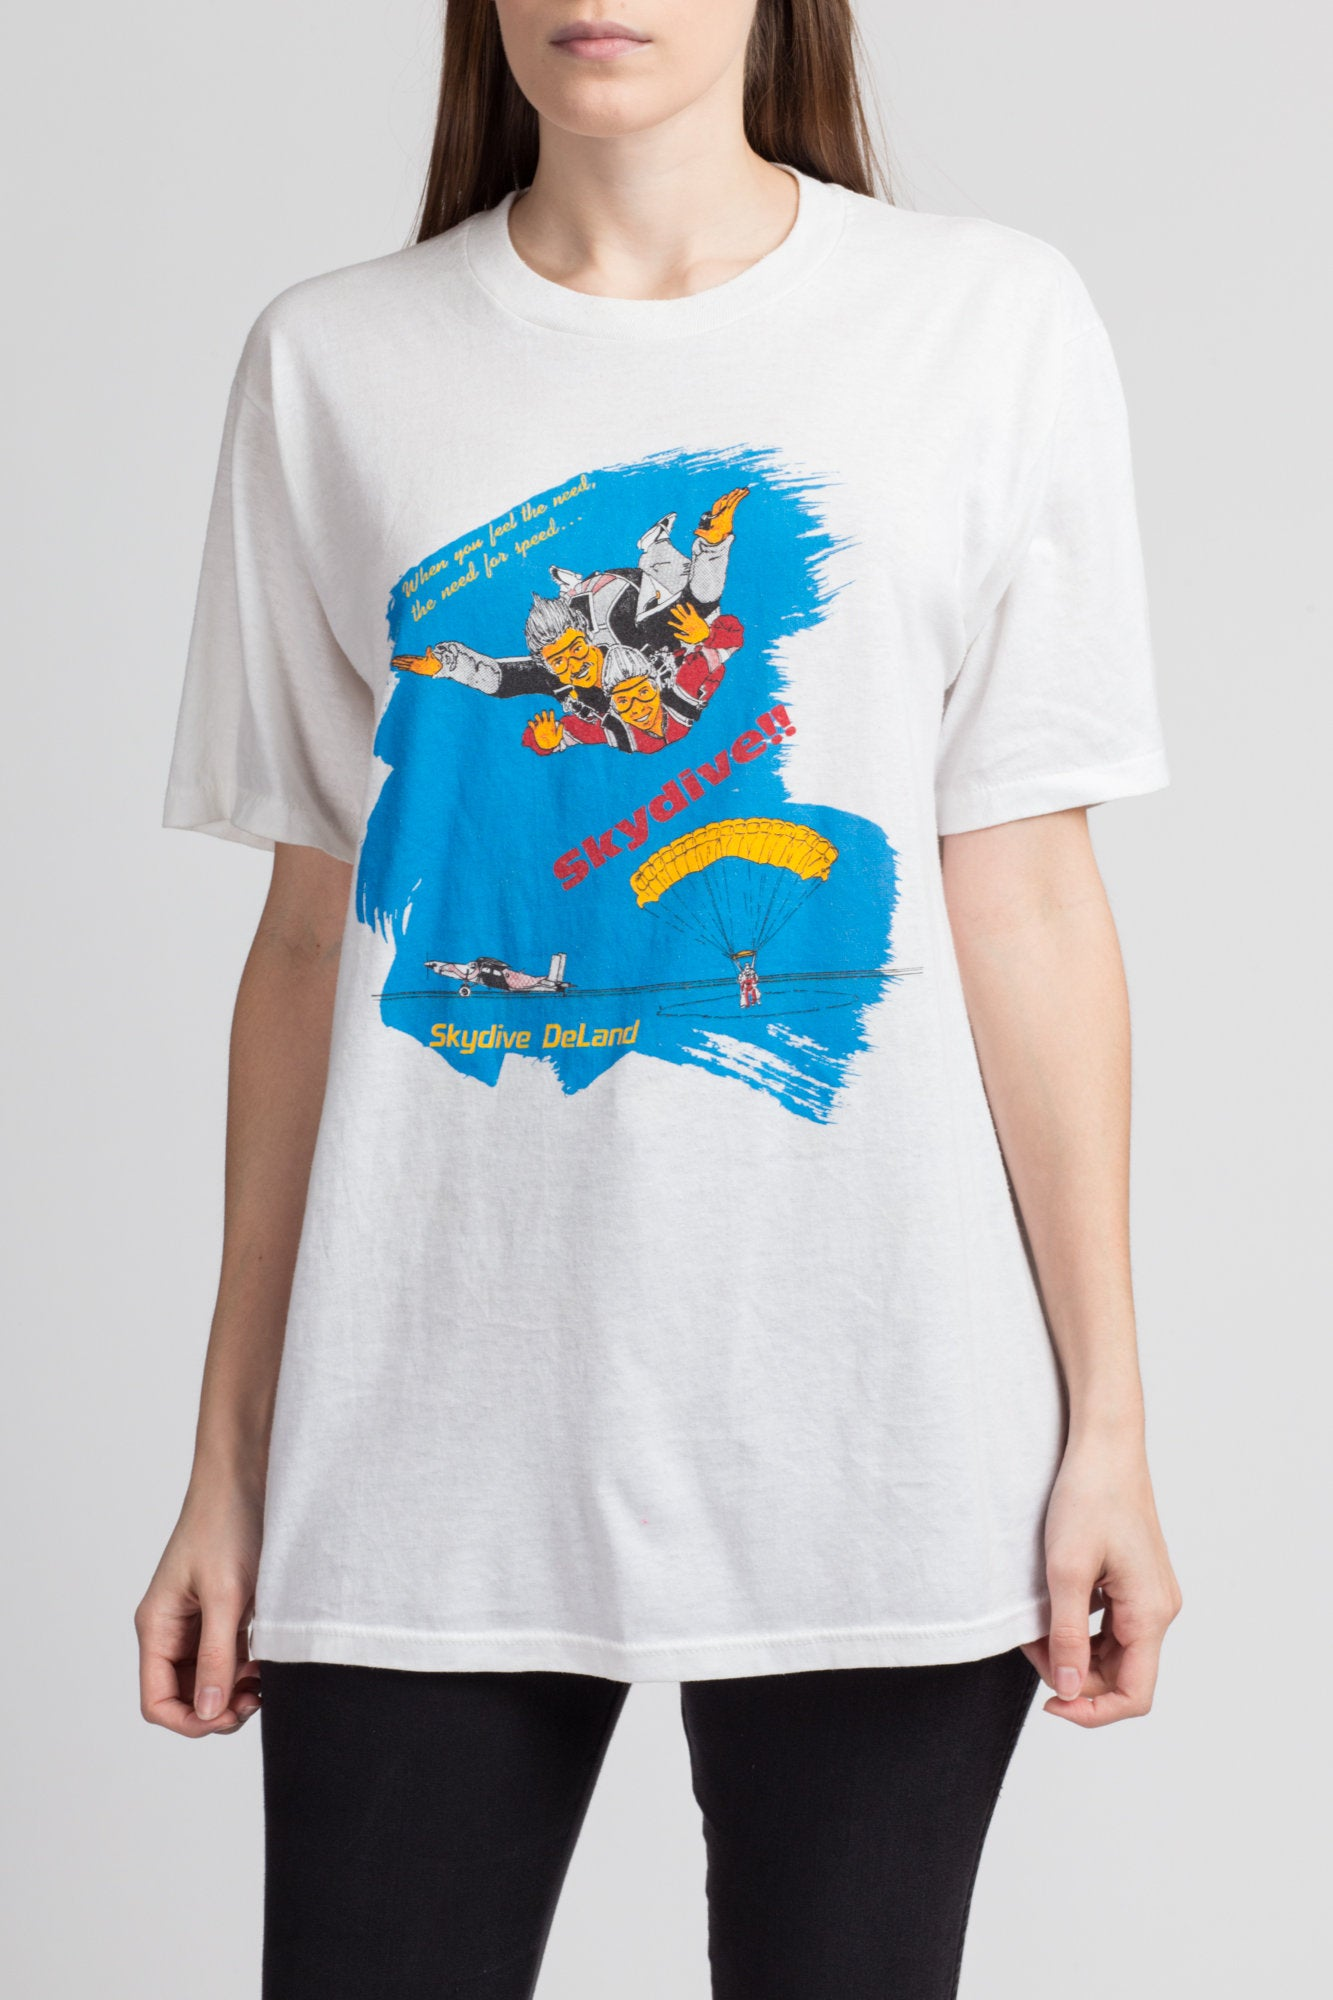 80s Skydiving Graphic Tee - Large to XL